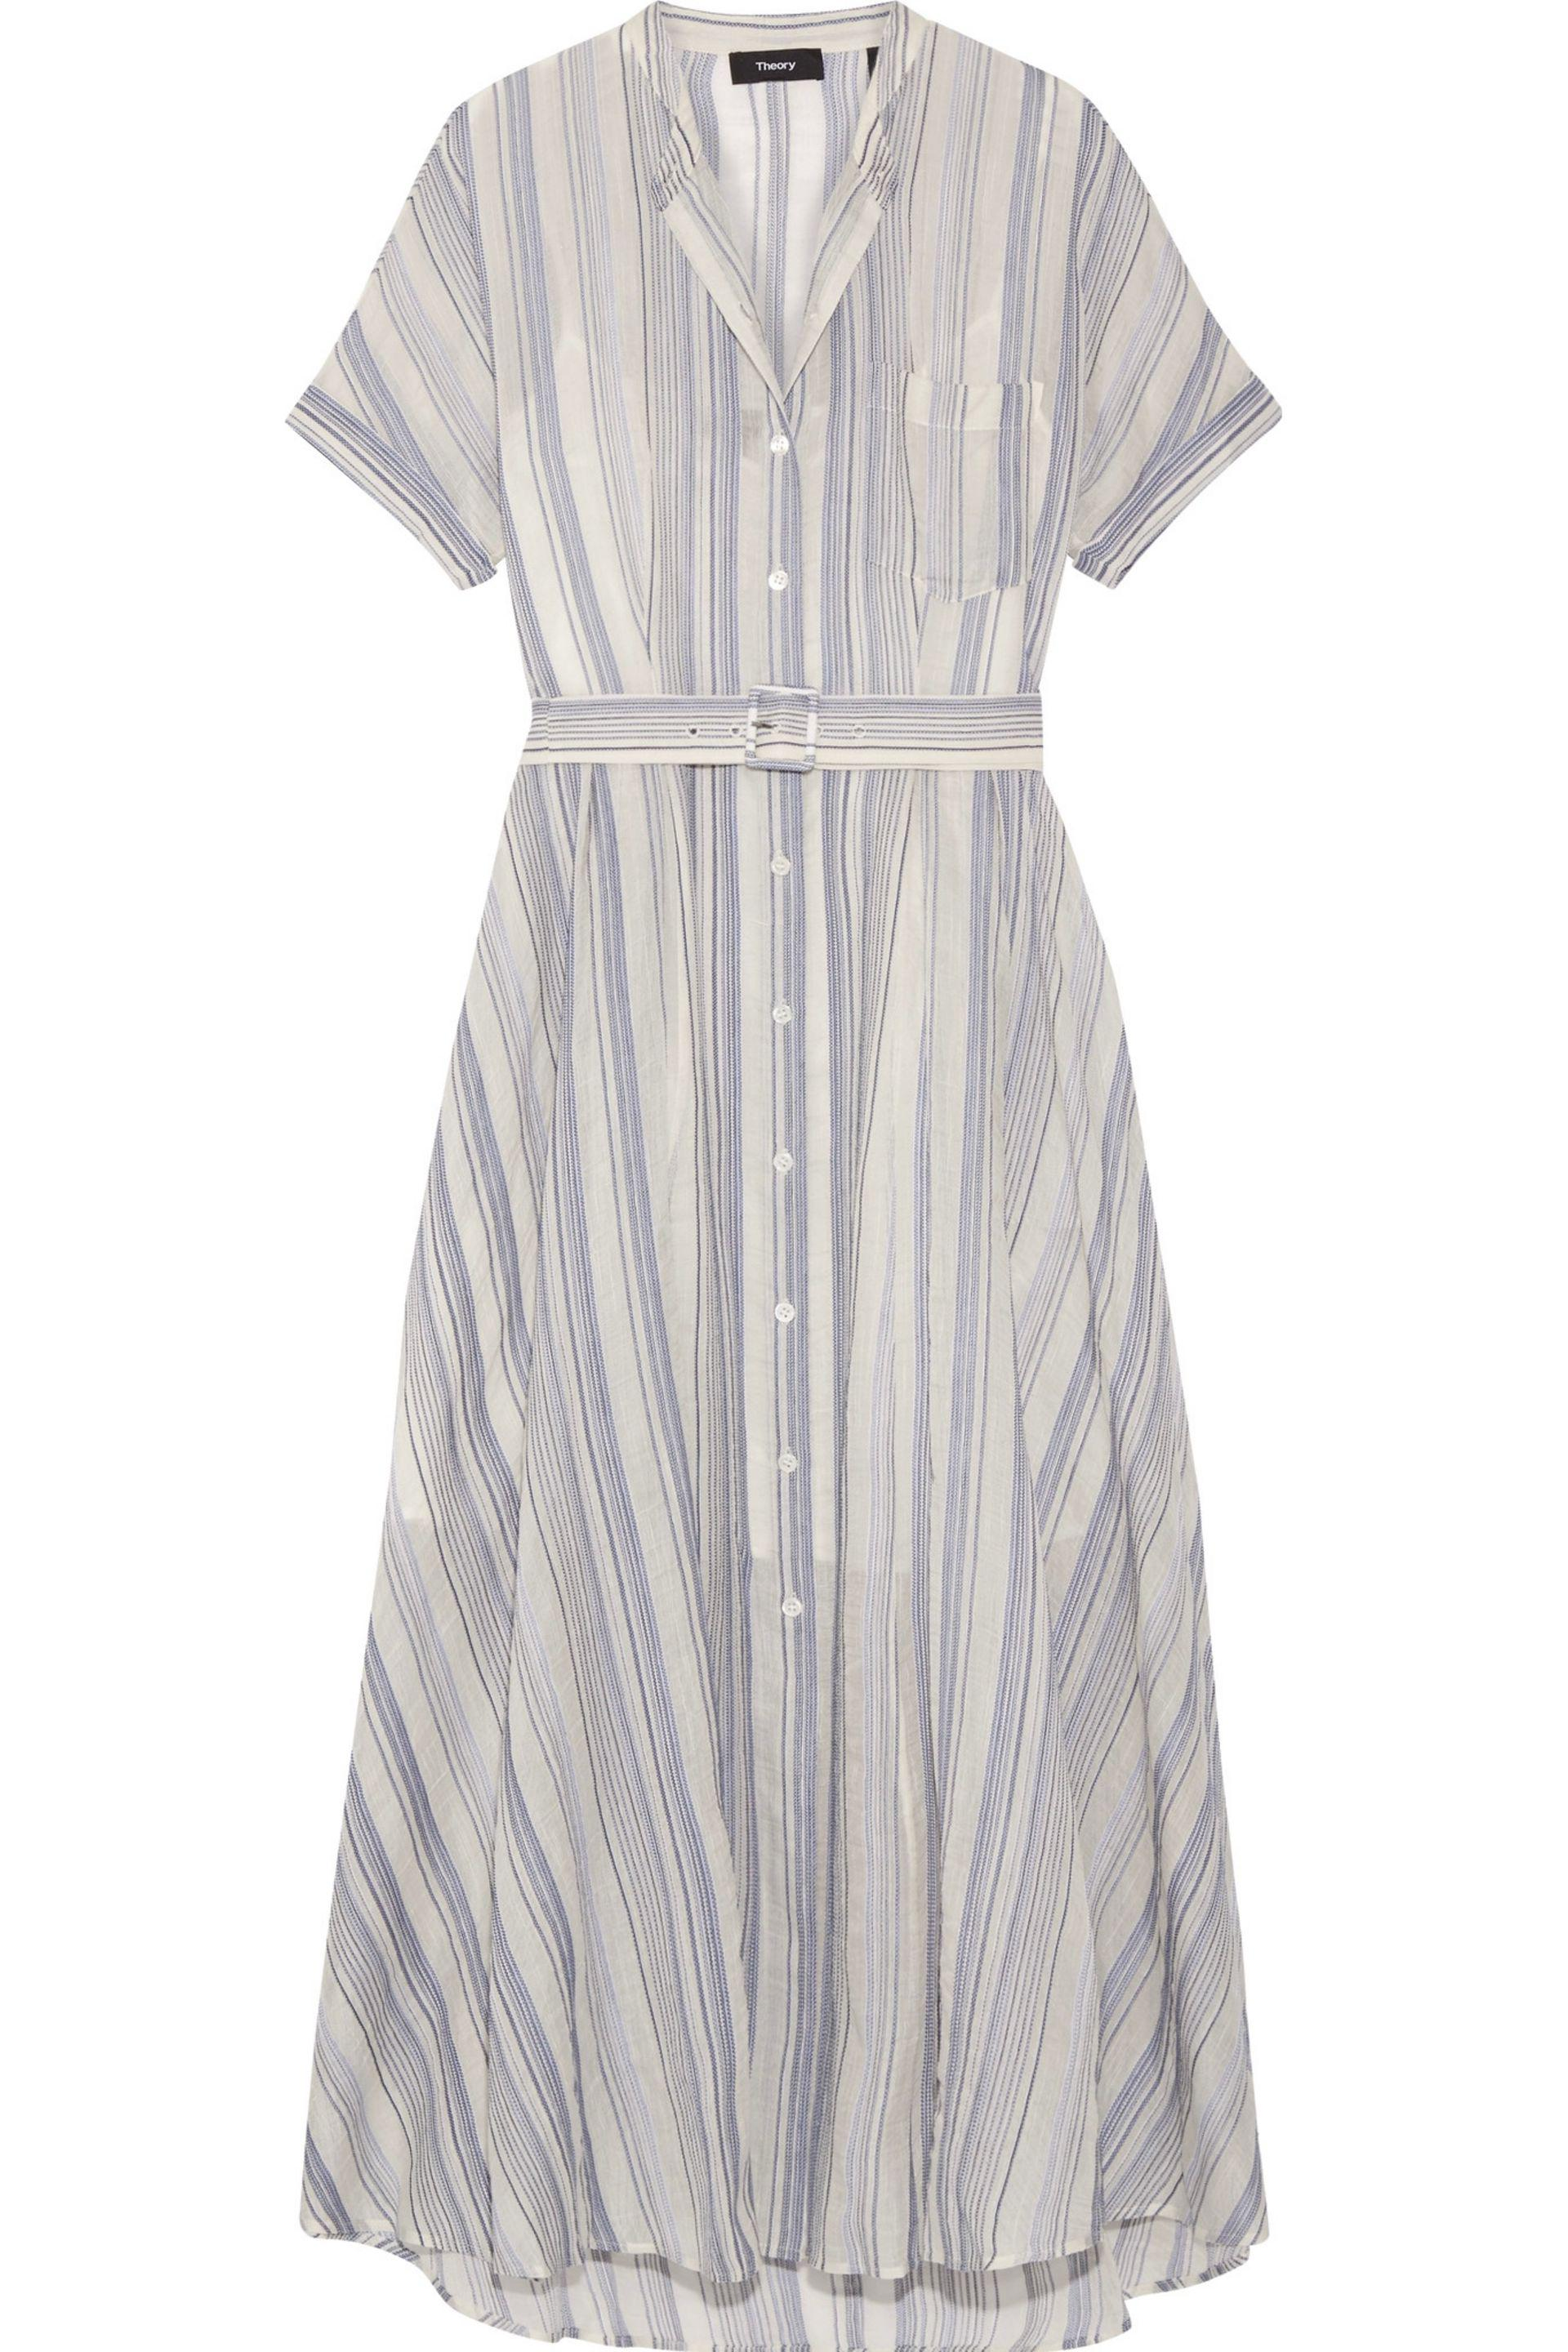 12f4e06f73c0 Theory Avink Striped Crinkled Cotton And Silk-blend Midi Dress in ...